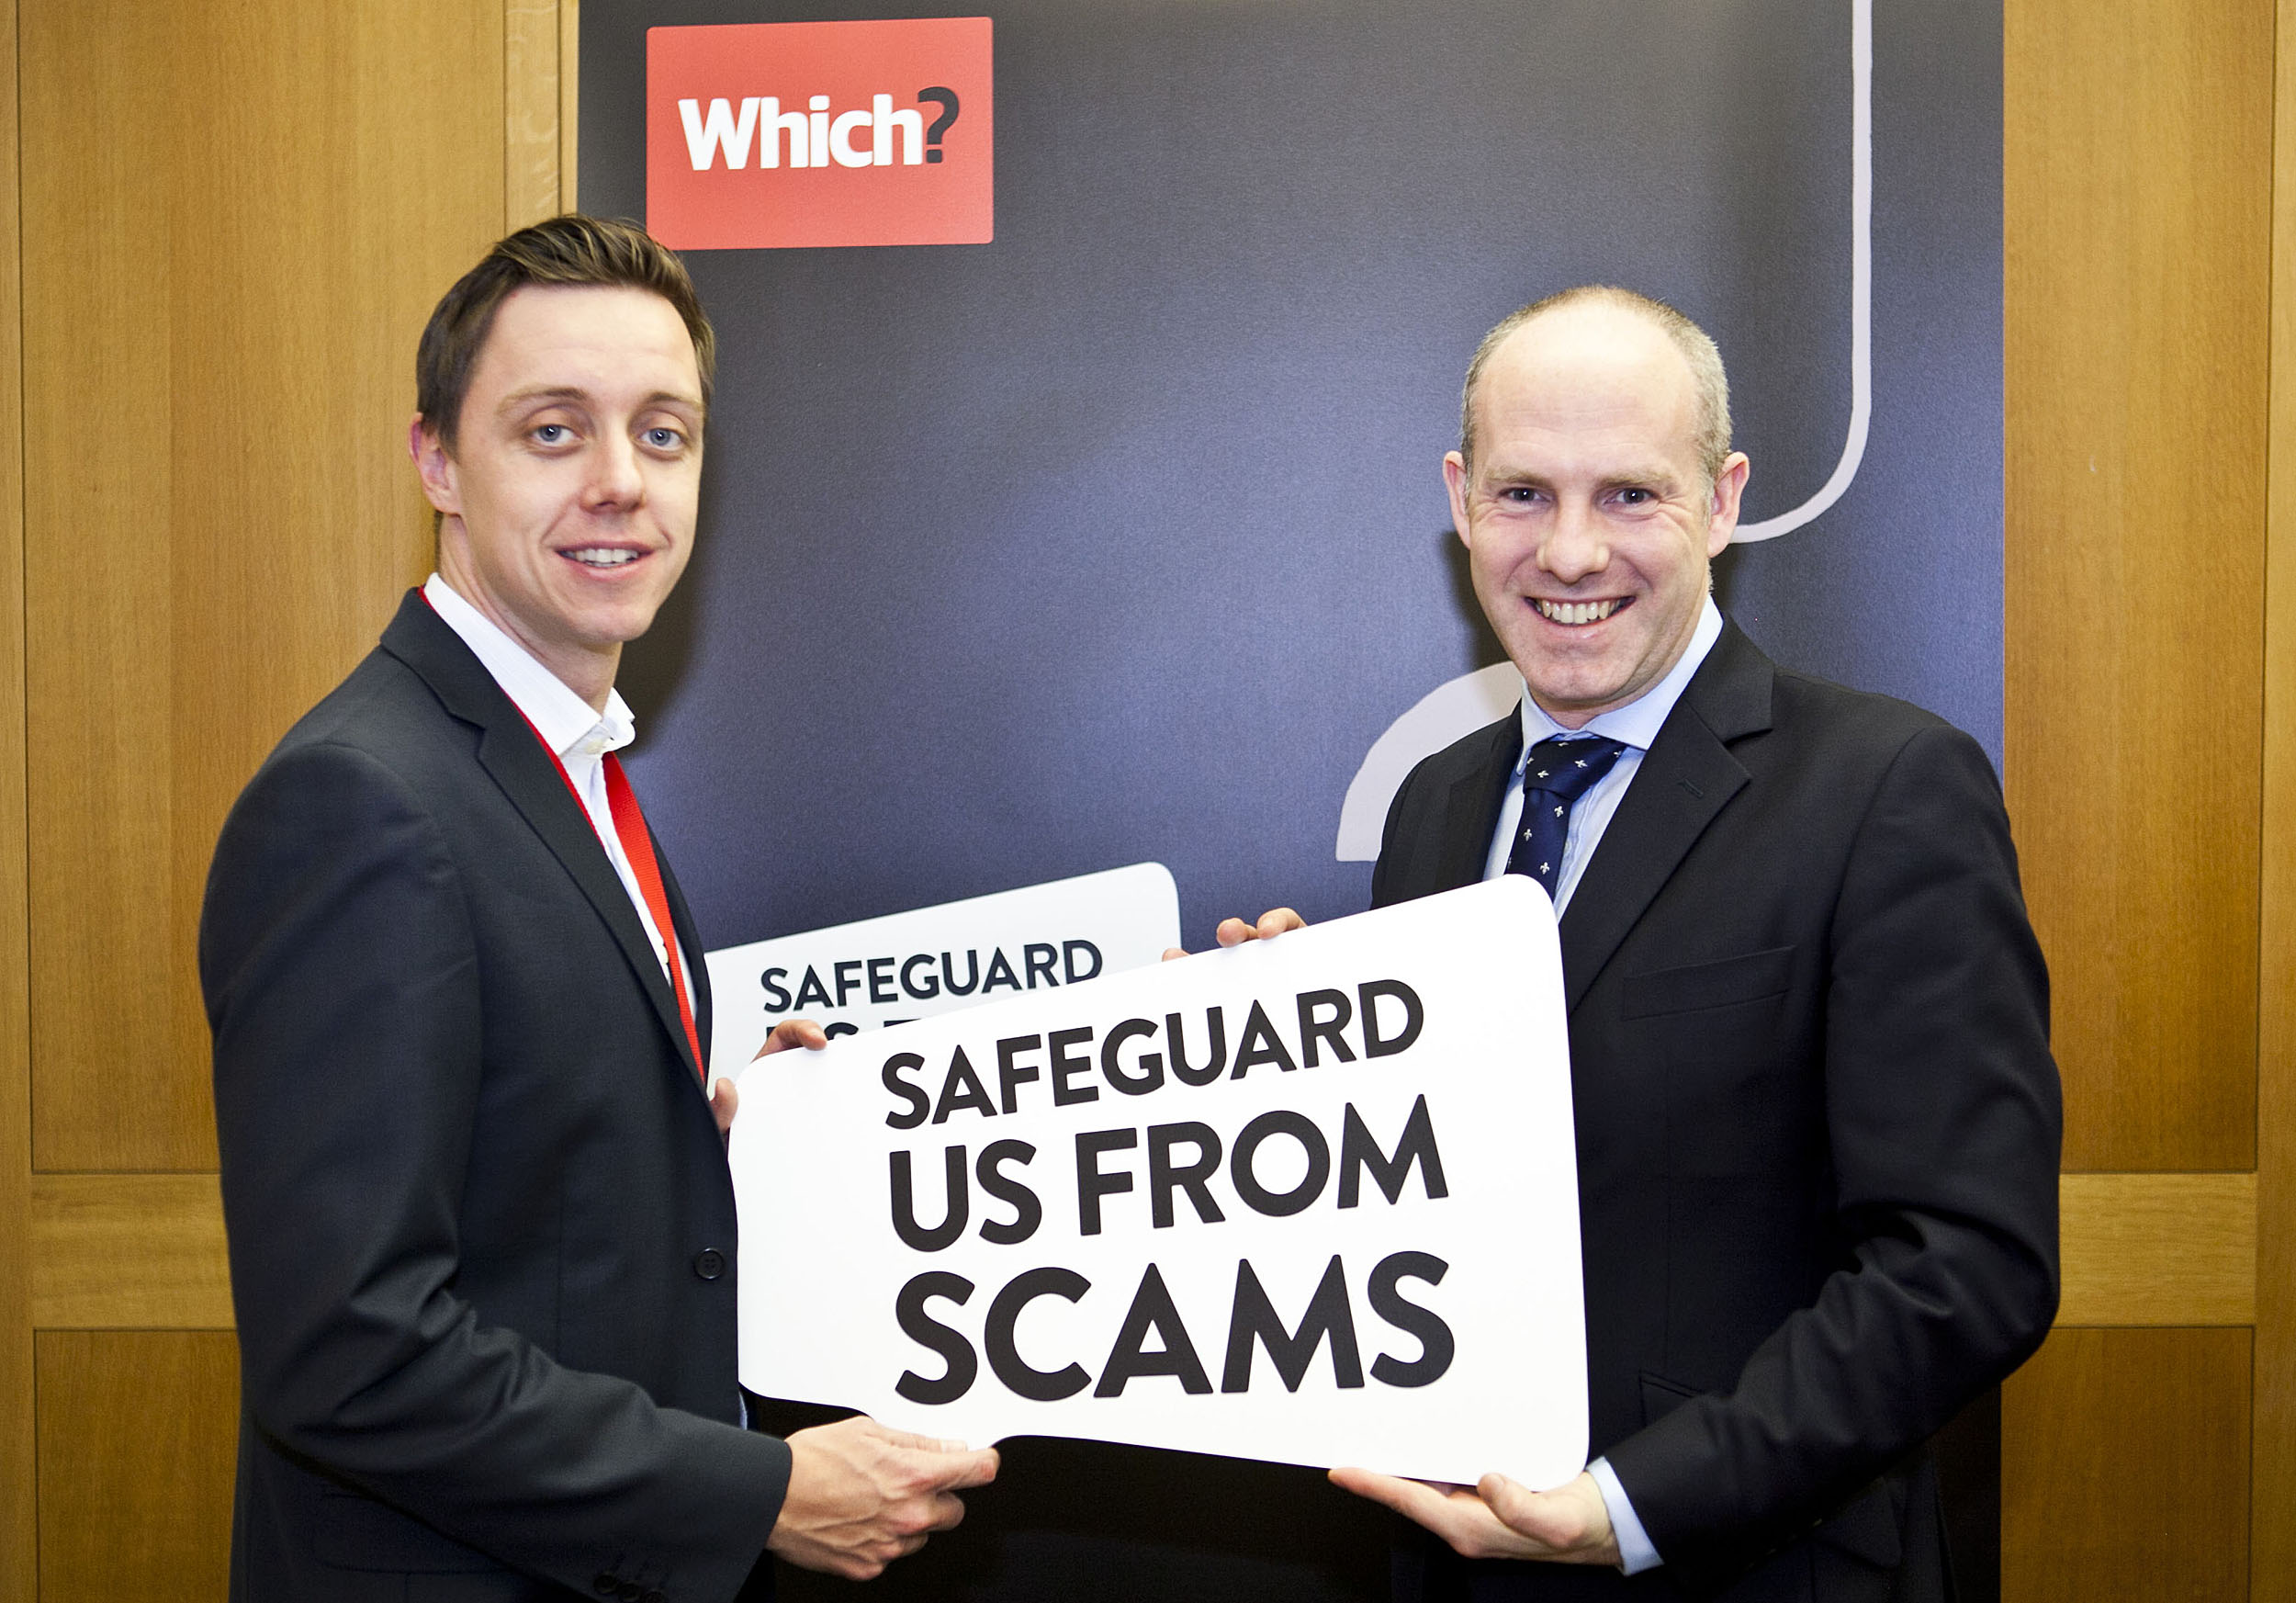 North Swindon MP Takes Part In 'Safeguard Us From Scams' Workshop In Parliament